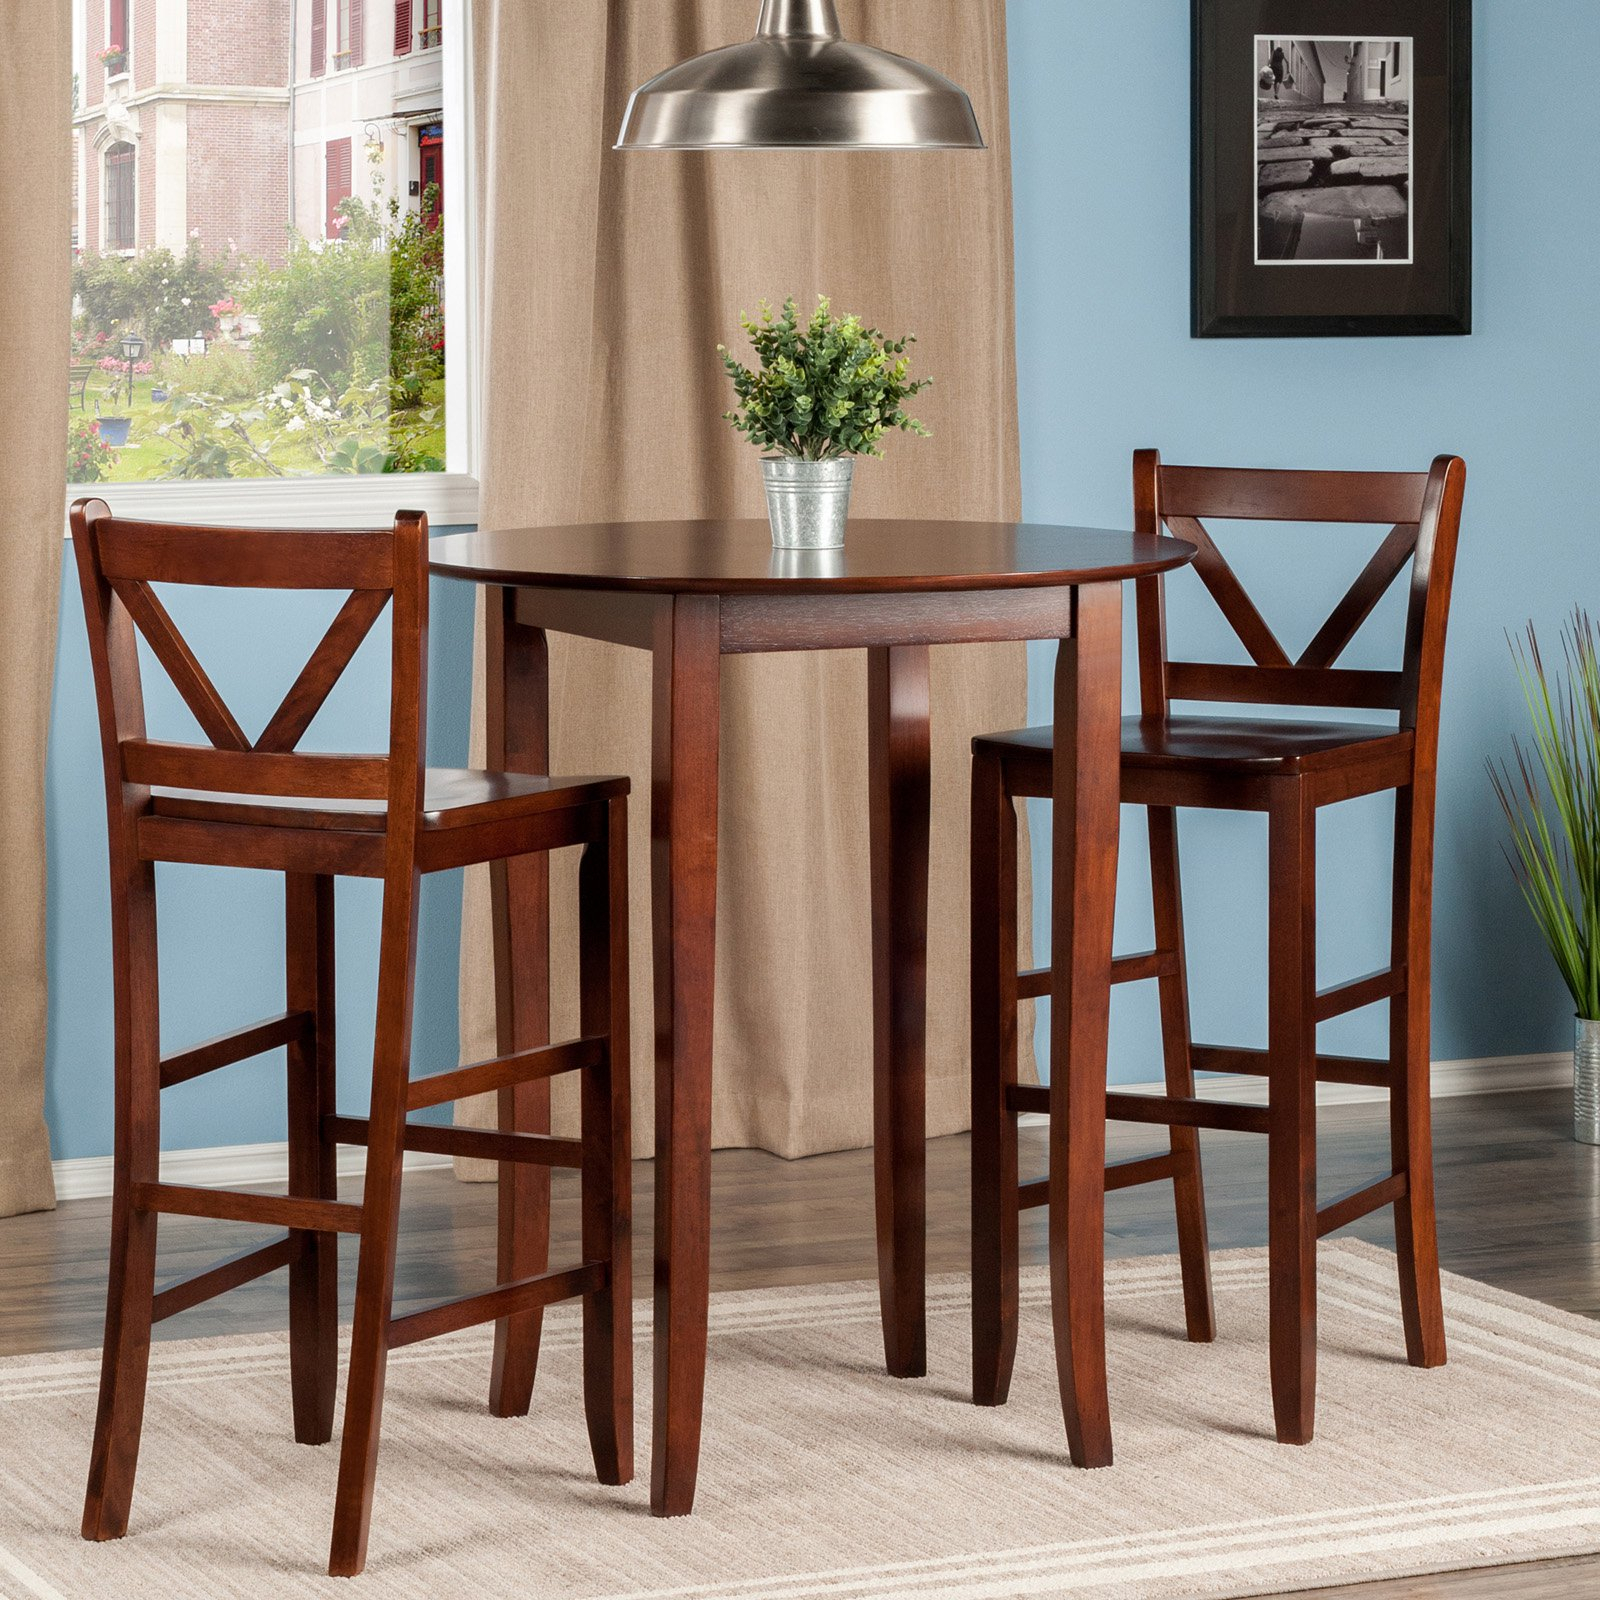 Winsome Trading Fiona 3 Piece Counter Height Round Dining Table Set Within Recent Winsome 3 Piece Counter Height Dining Sets (Photo 6 of 20)